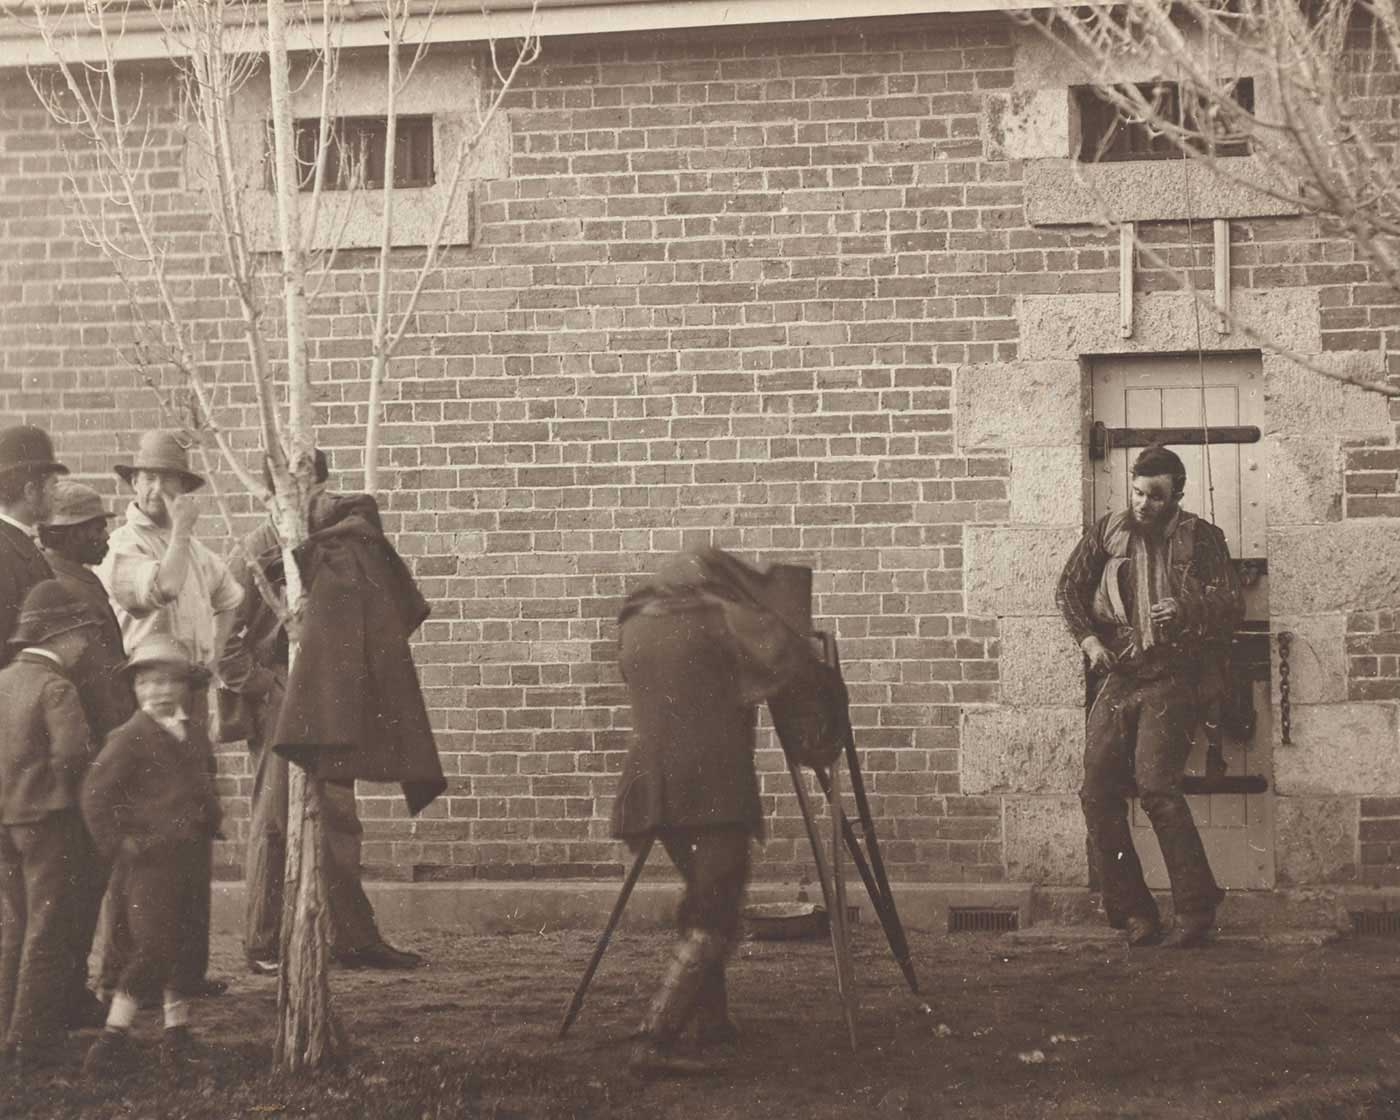 Black and white photo of a filming scene where a man is being filmed with a people looking on.